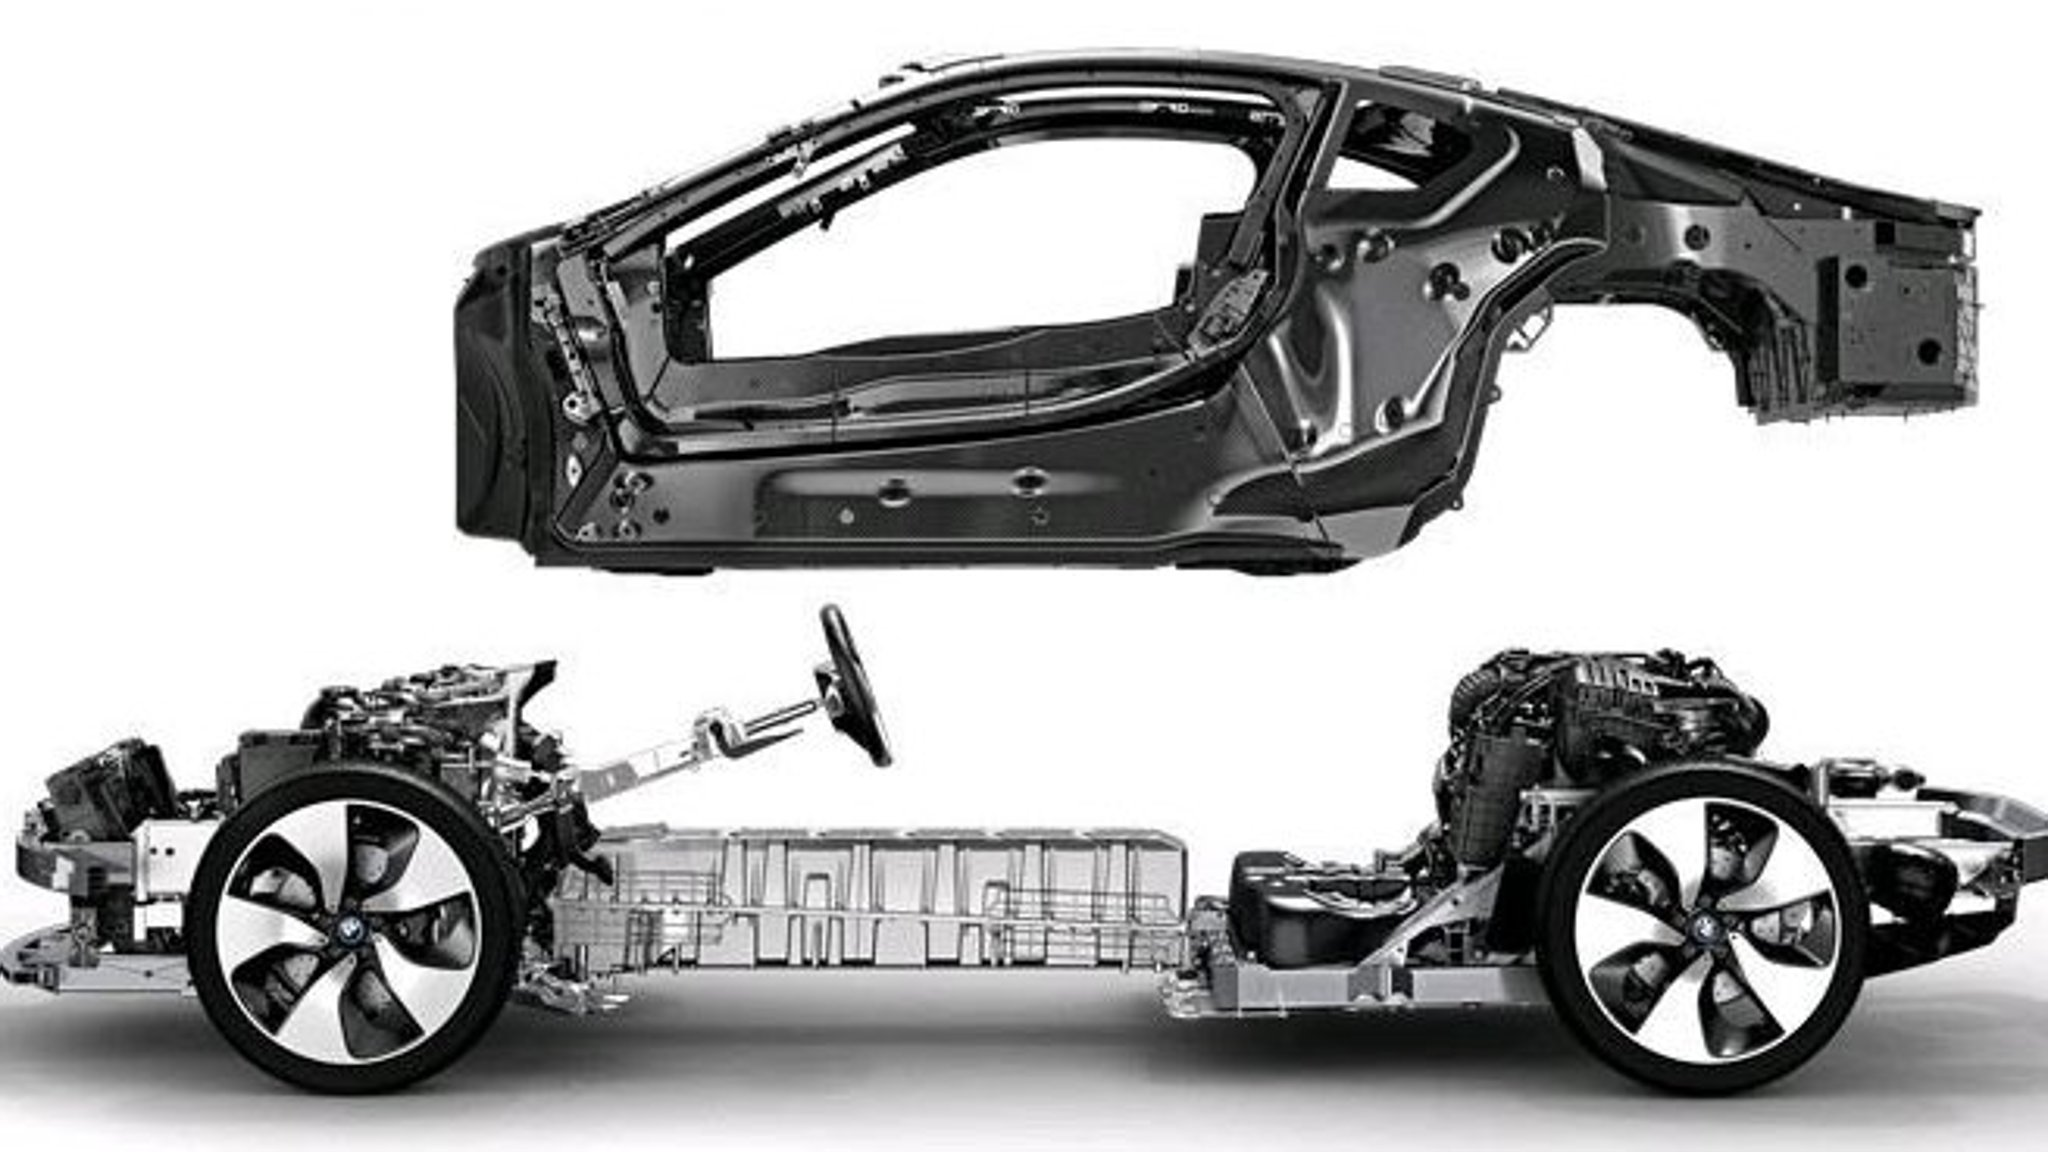 Composites are next big frontier for carmakers | Financial Times